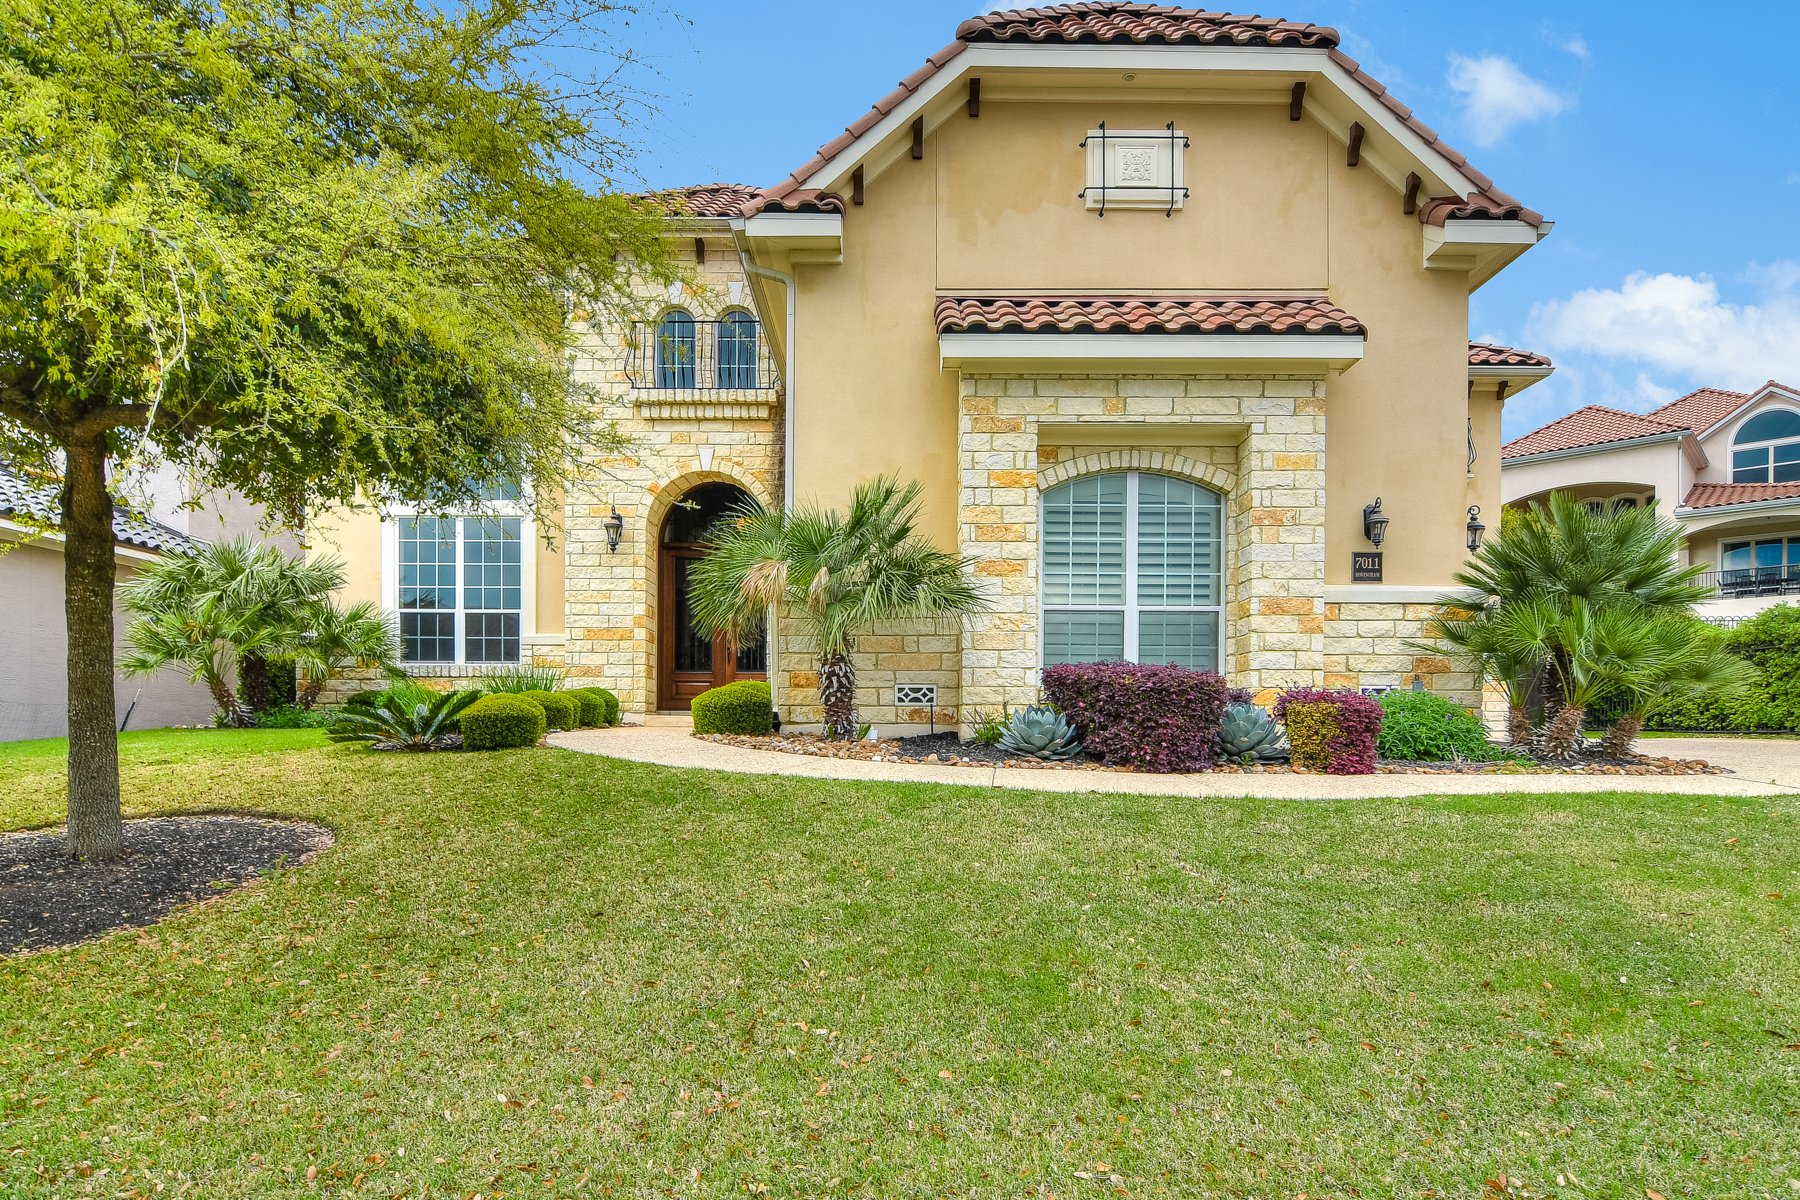 Single Family Home for Sale at Dramatic and Stunning Home in The Dominion 7011 Hovingham San Antonio, Texas, 78257 United States